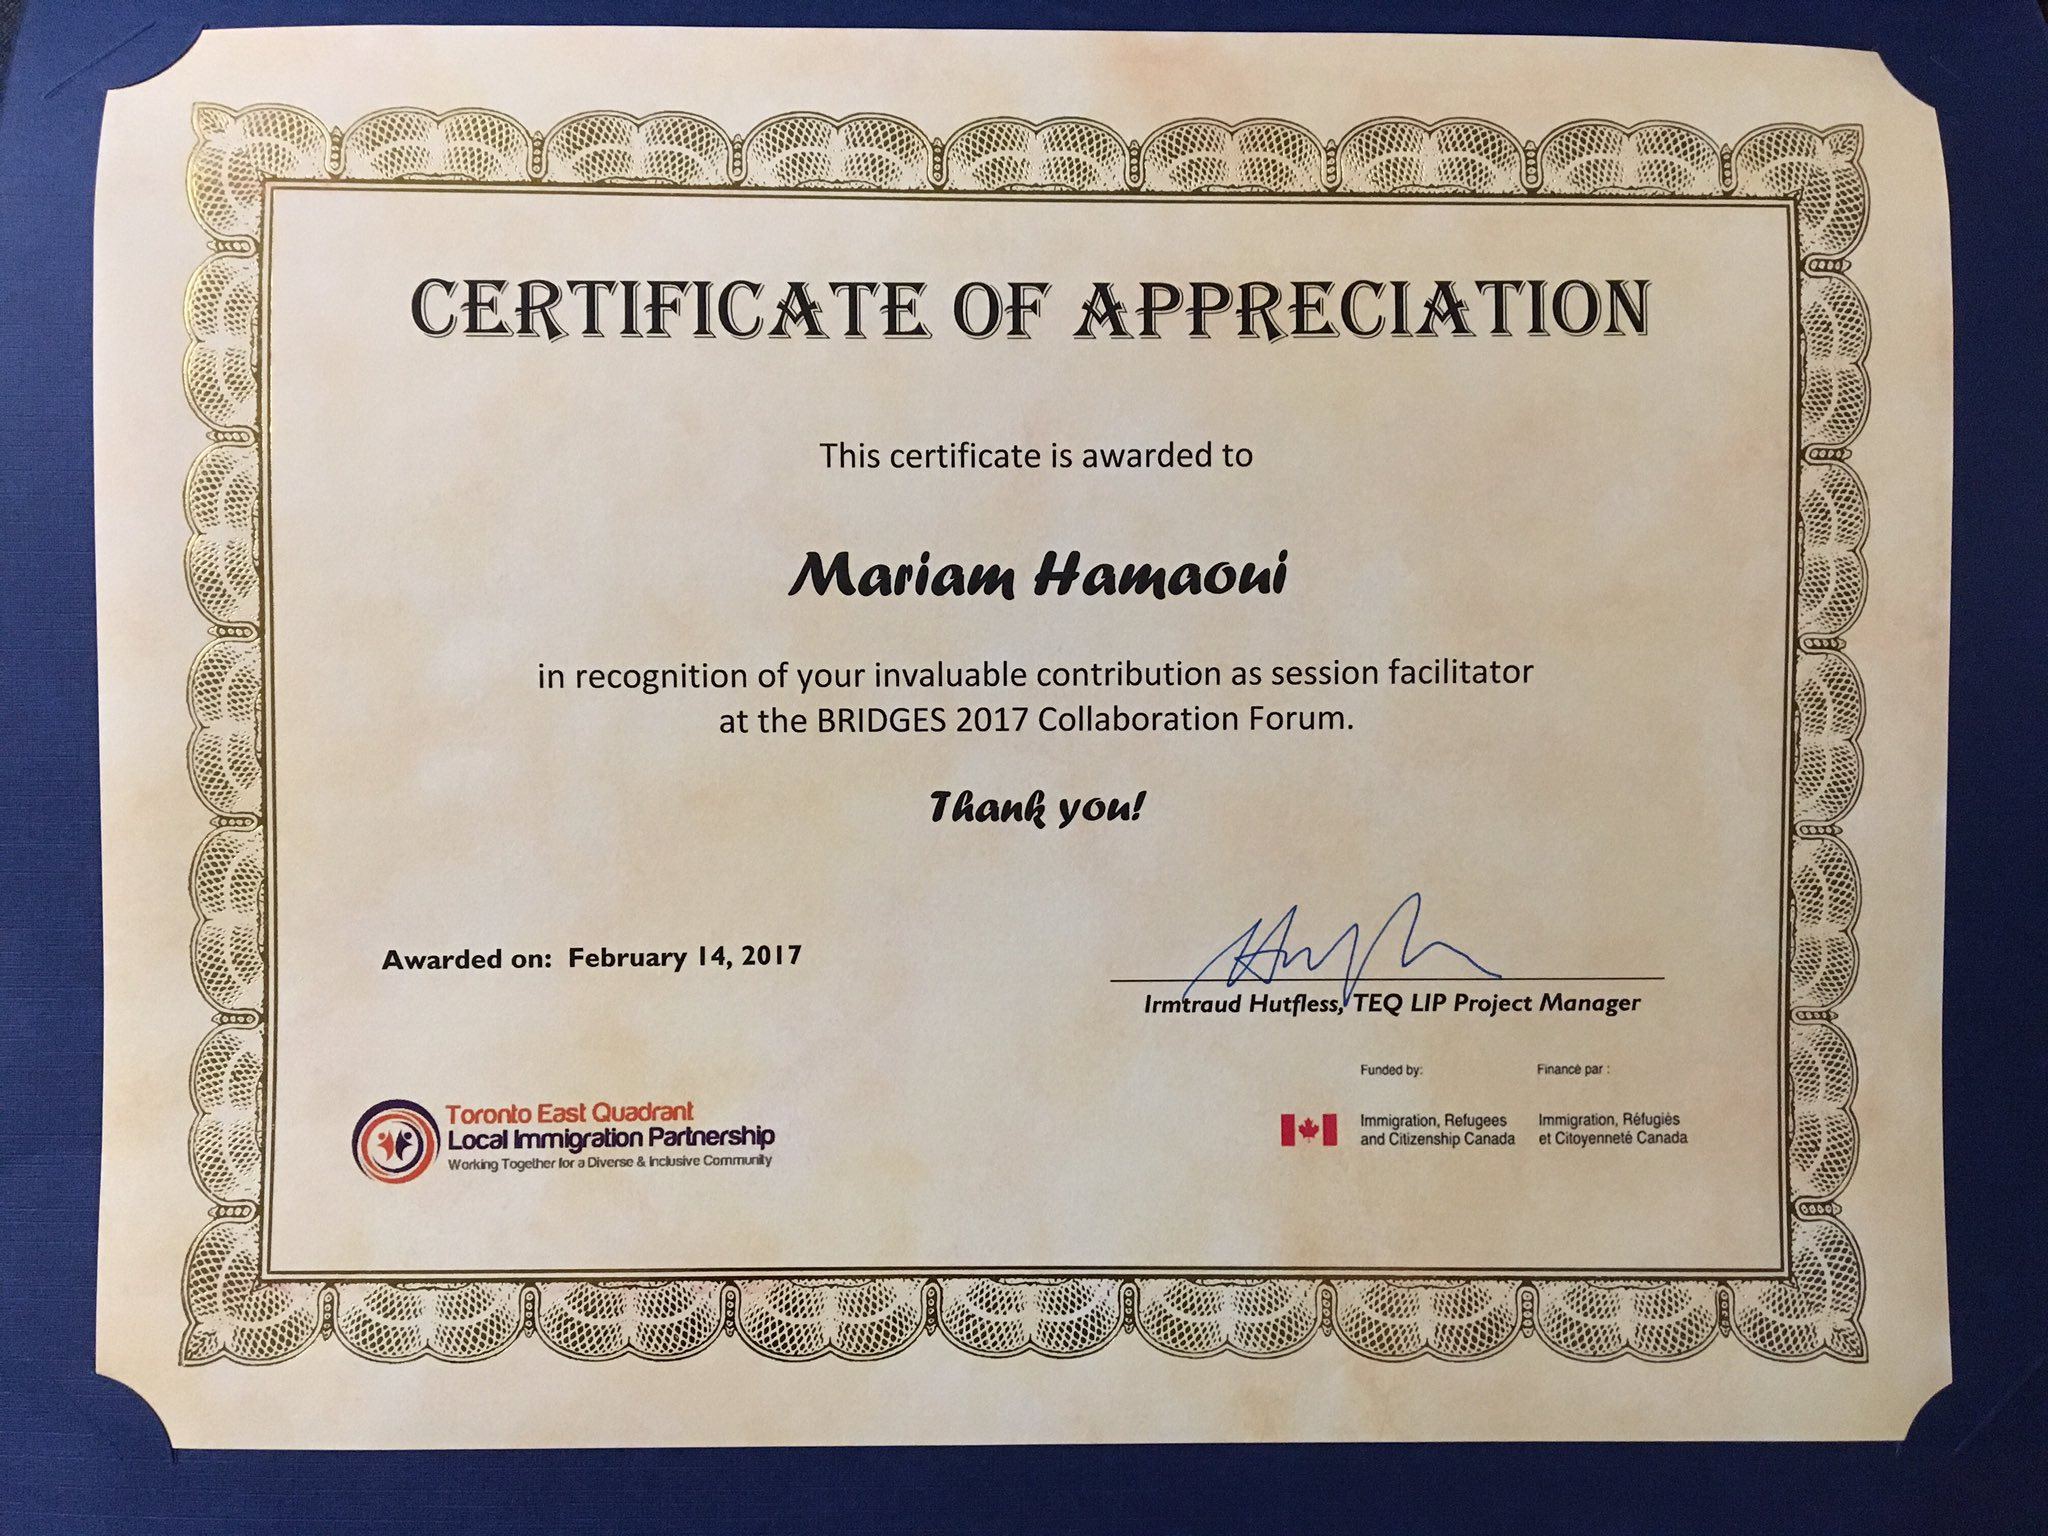 Mariam hamaoui on twitter thank you teqlip for the certificate mariam hamaoui on twitter thank you teqlip for the certificate of appreciation bridges2017 facilitator polycultural syriannewcomer polycultural yadclub Images